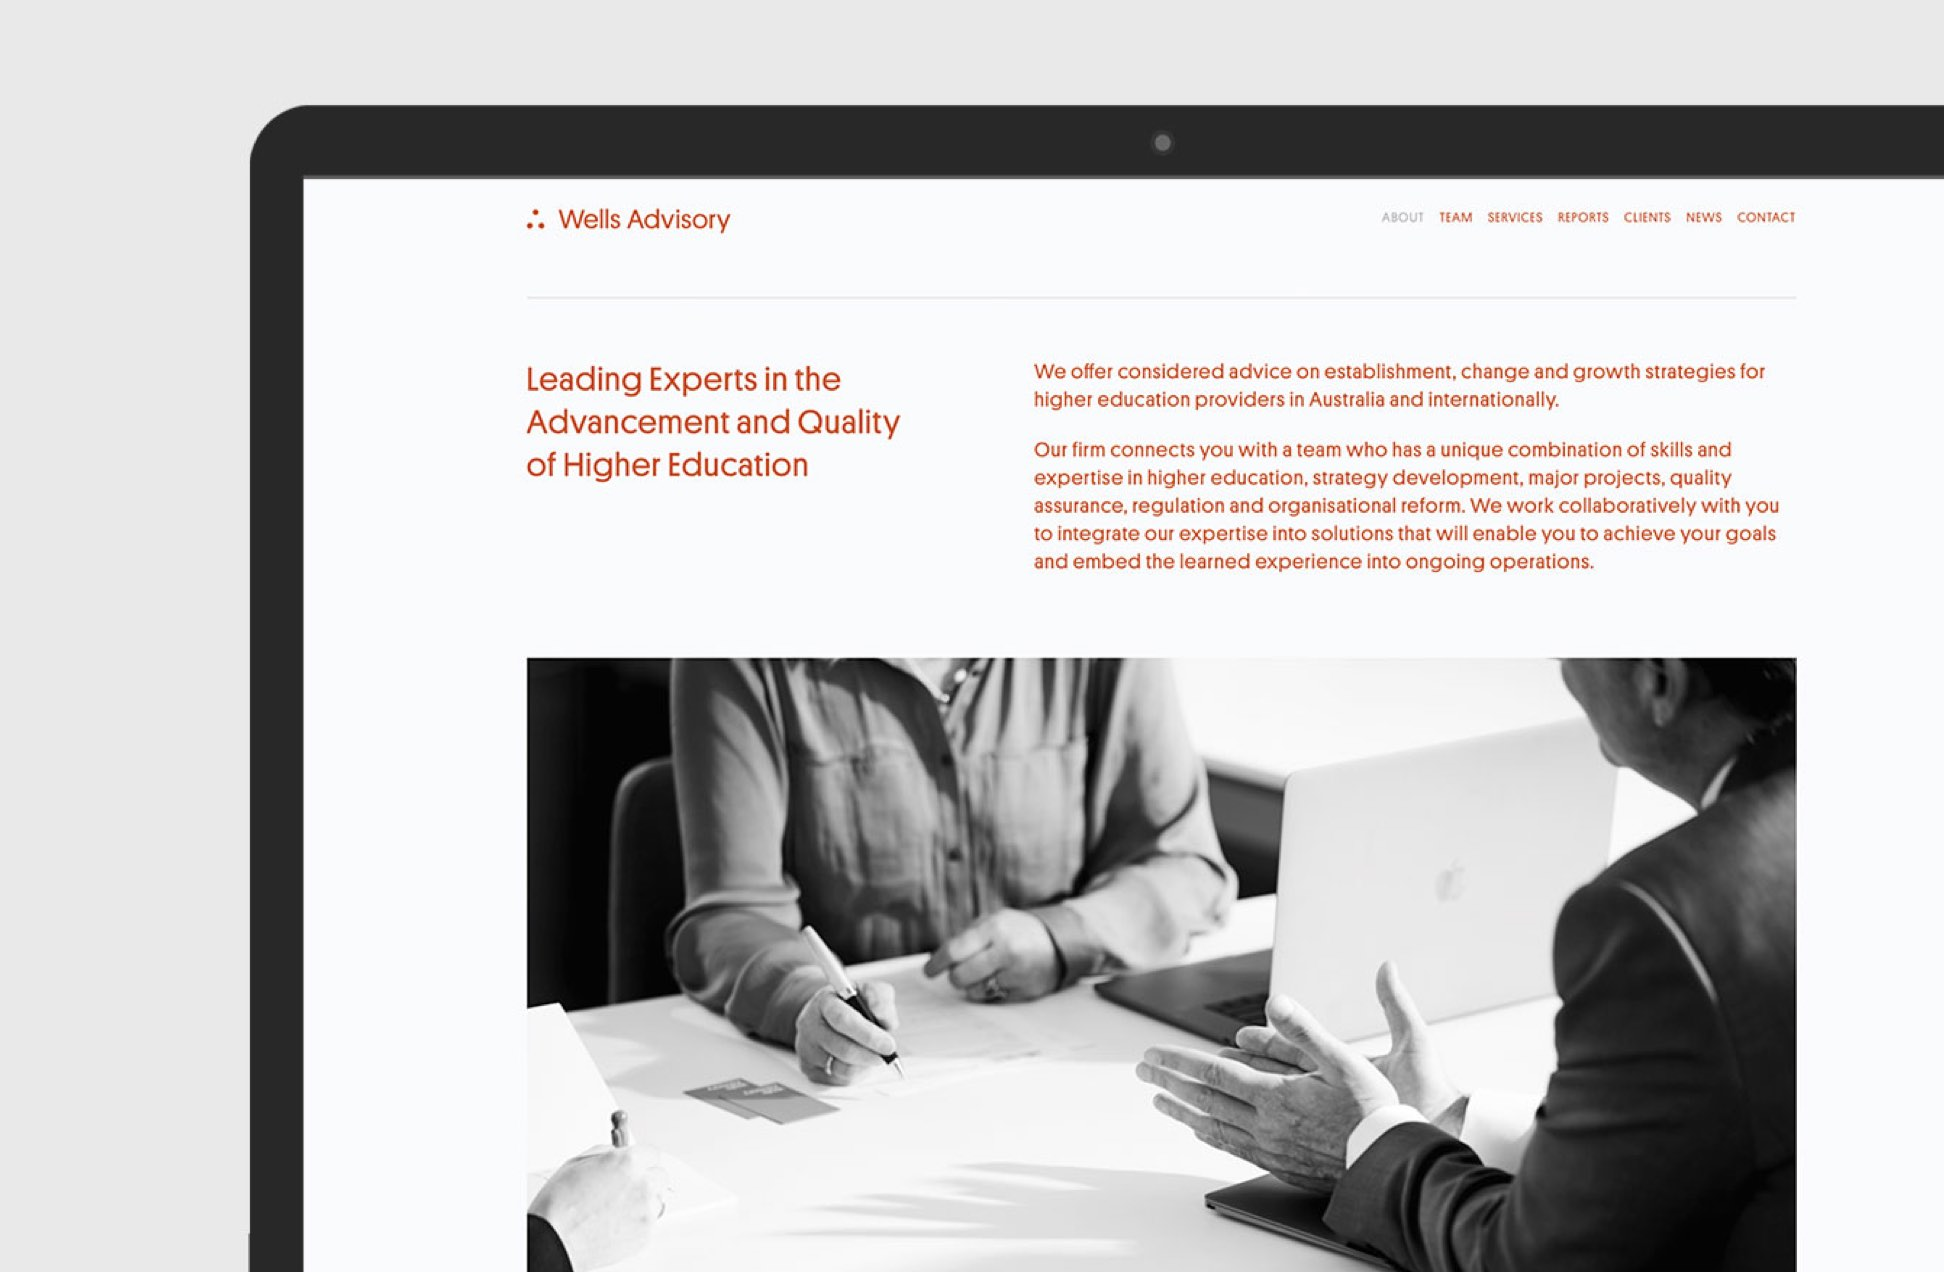 Wells Advisory website about